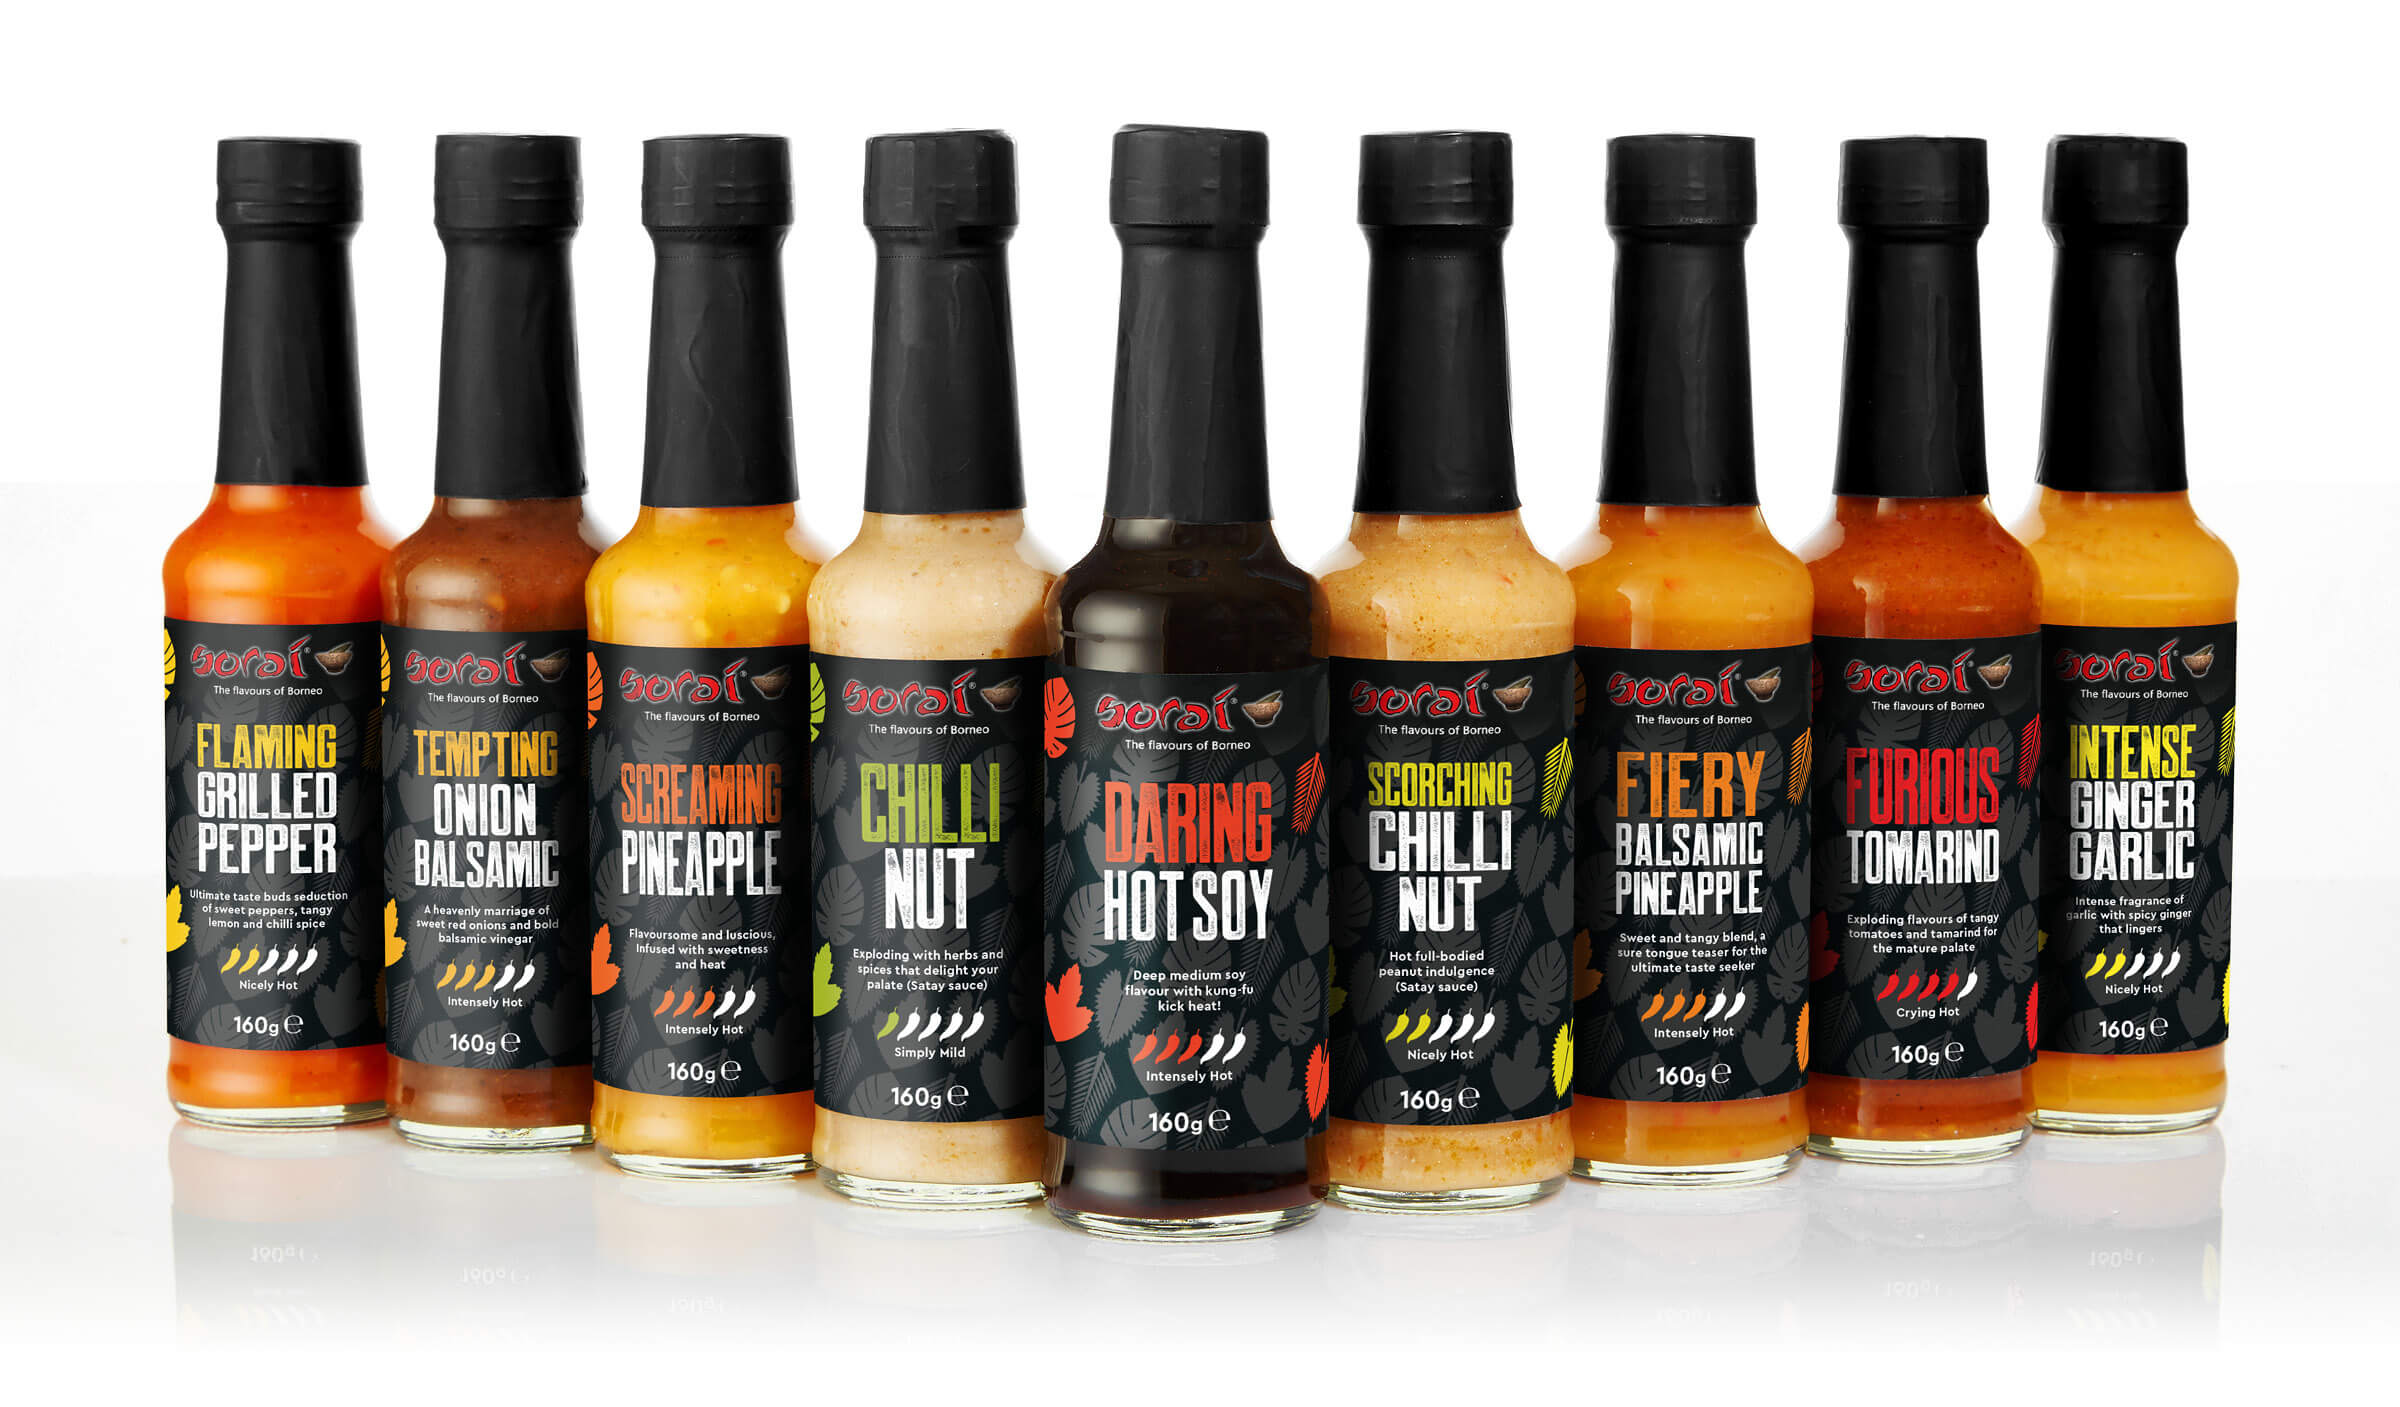 Hot sauce packaging designs